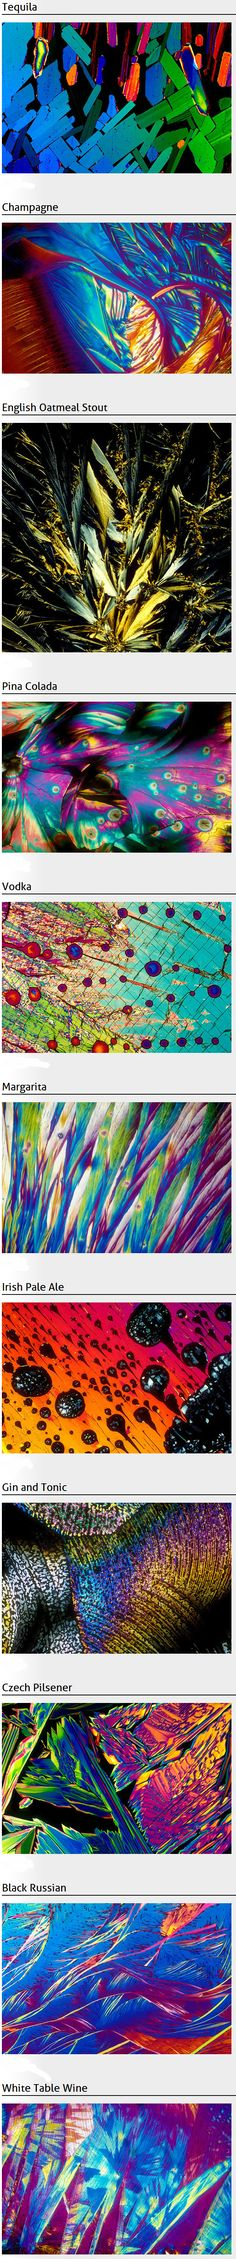 Alcohol under the microscope